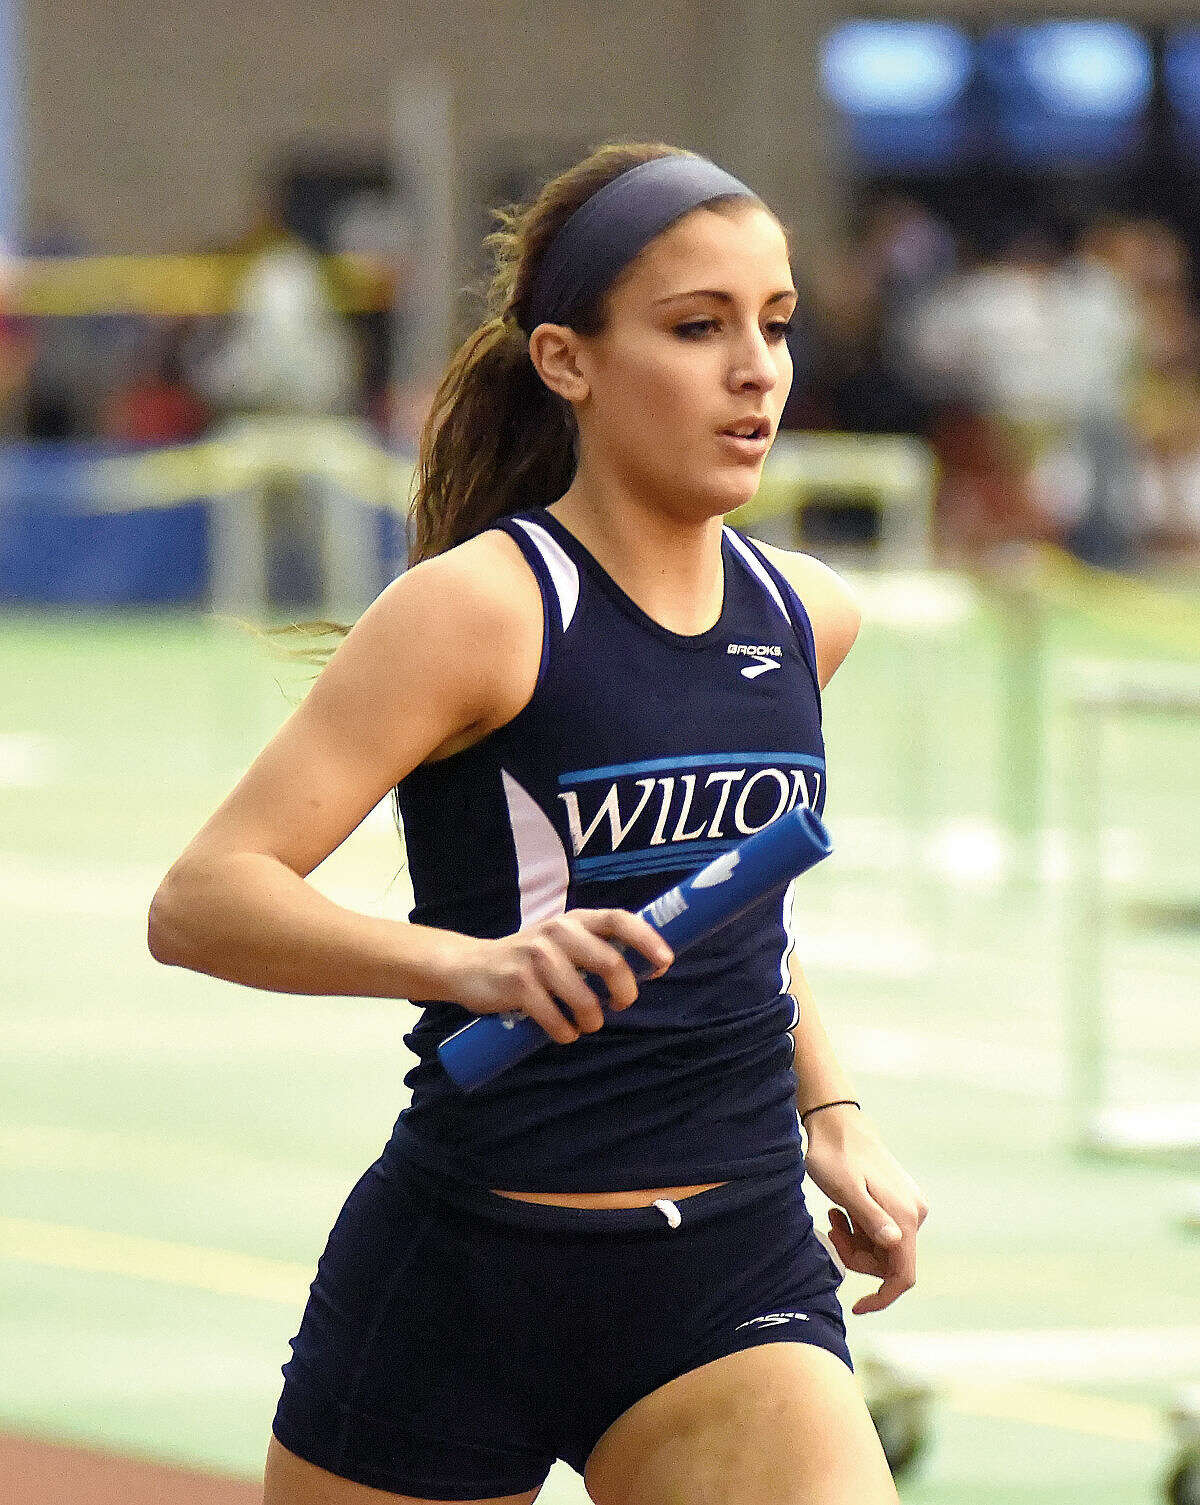 Wilton's Laine Parsons competes at the 2015 State Open indoor track championship meet in New Haven. (Photos by John Nash)